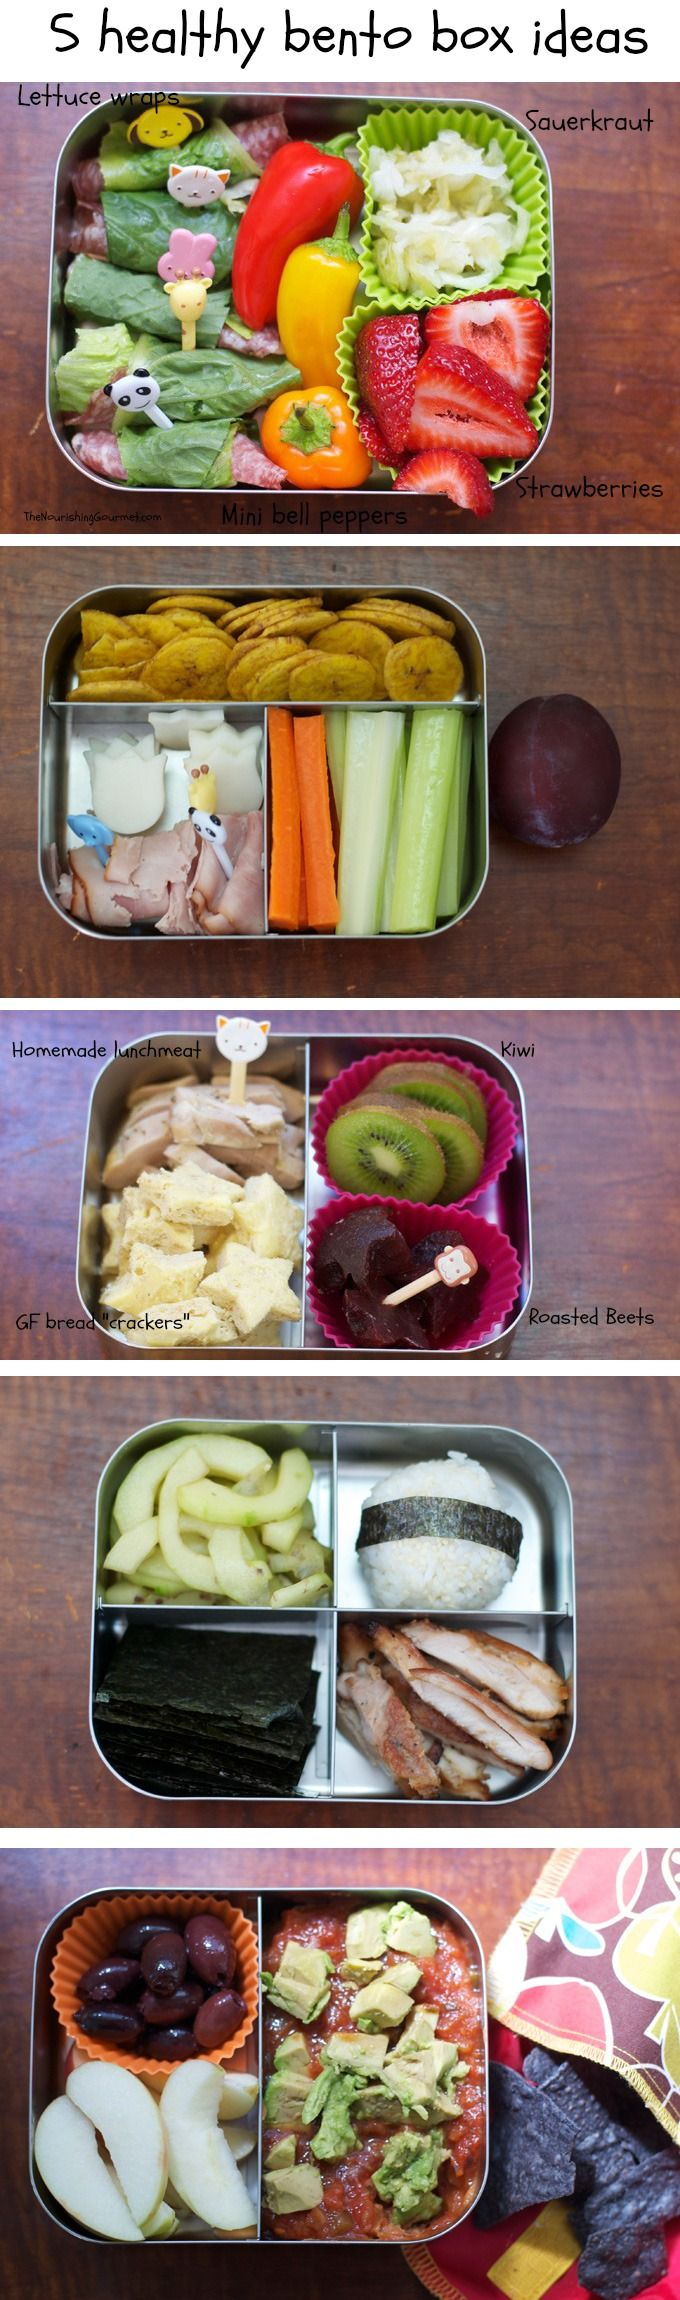 Bento boxes are a fun way to add #healthy variety to lunches. Here are five ideas (go to the post for all of the #recipes!) that are kid-friendly, and #glutenfree too!